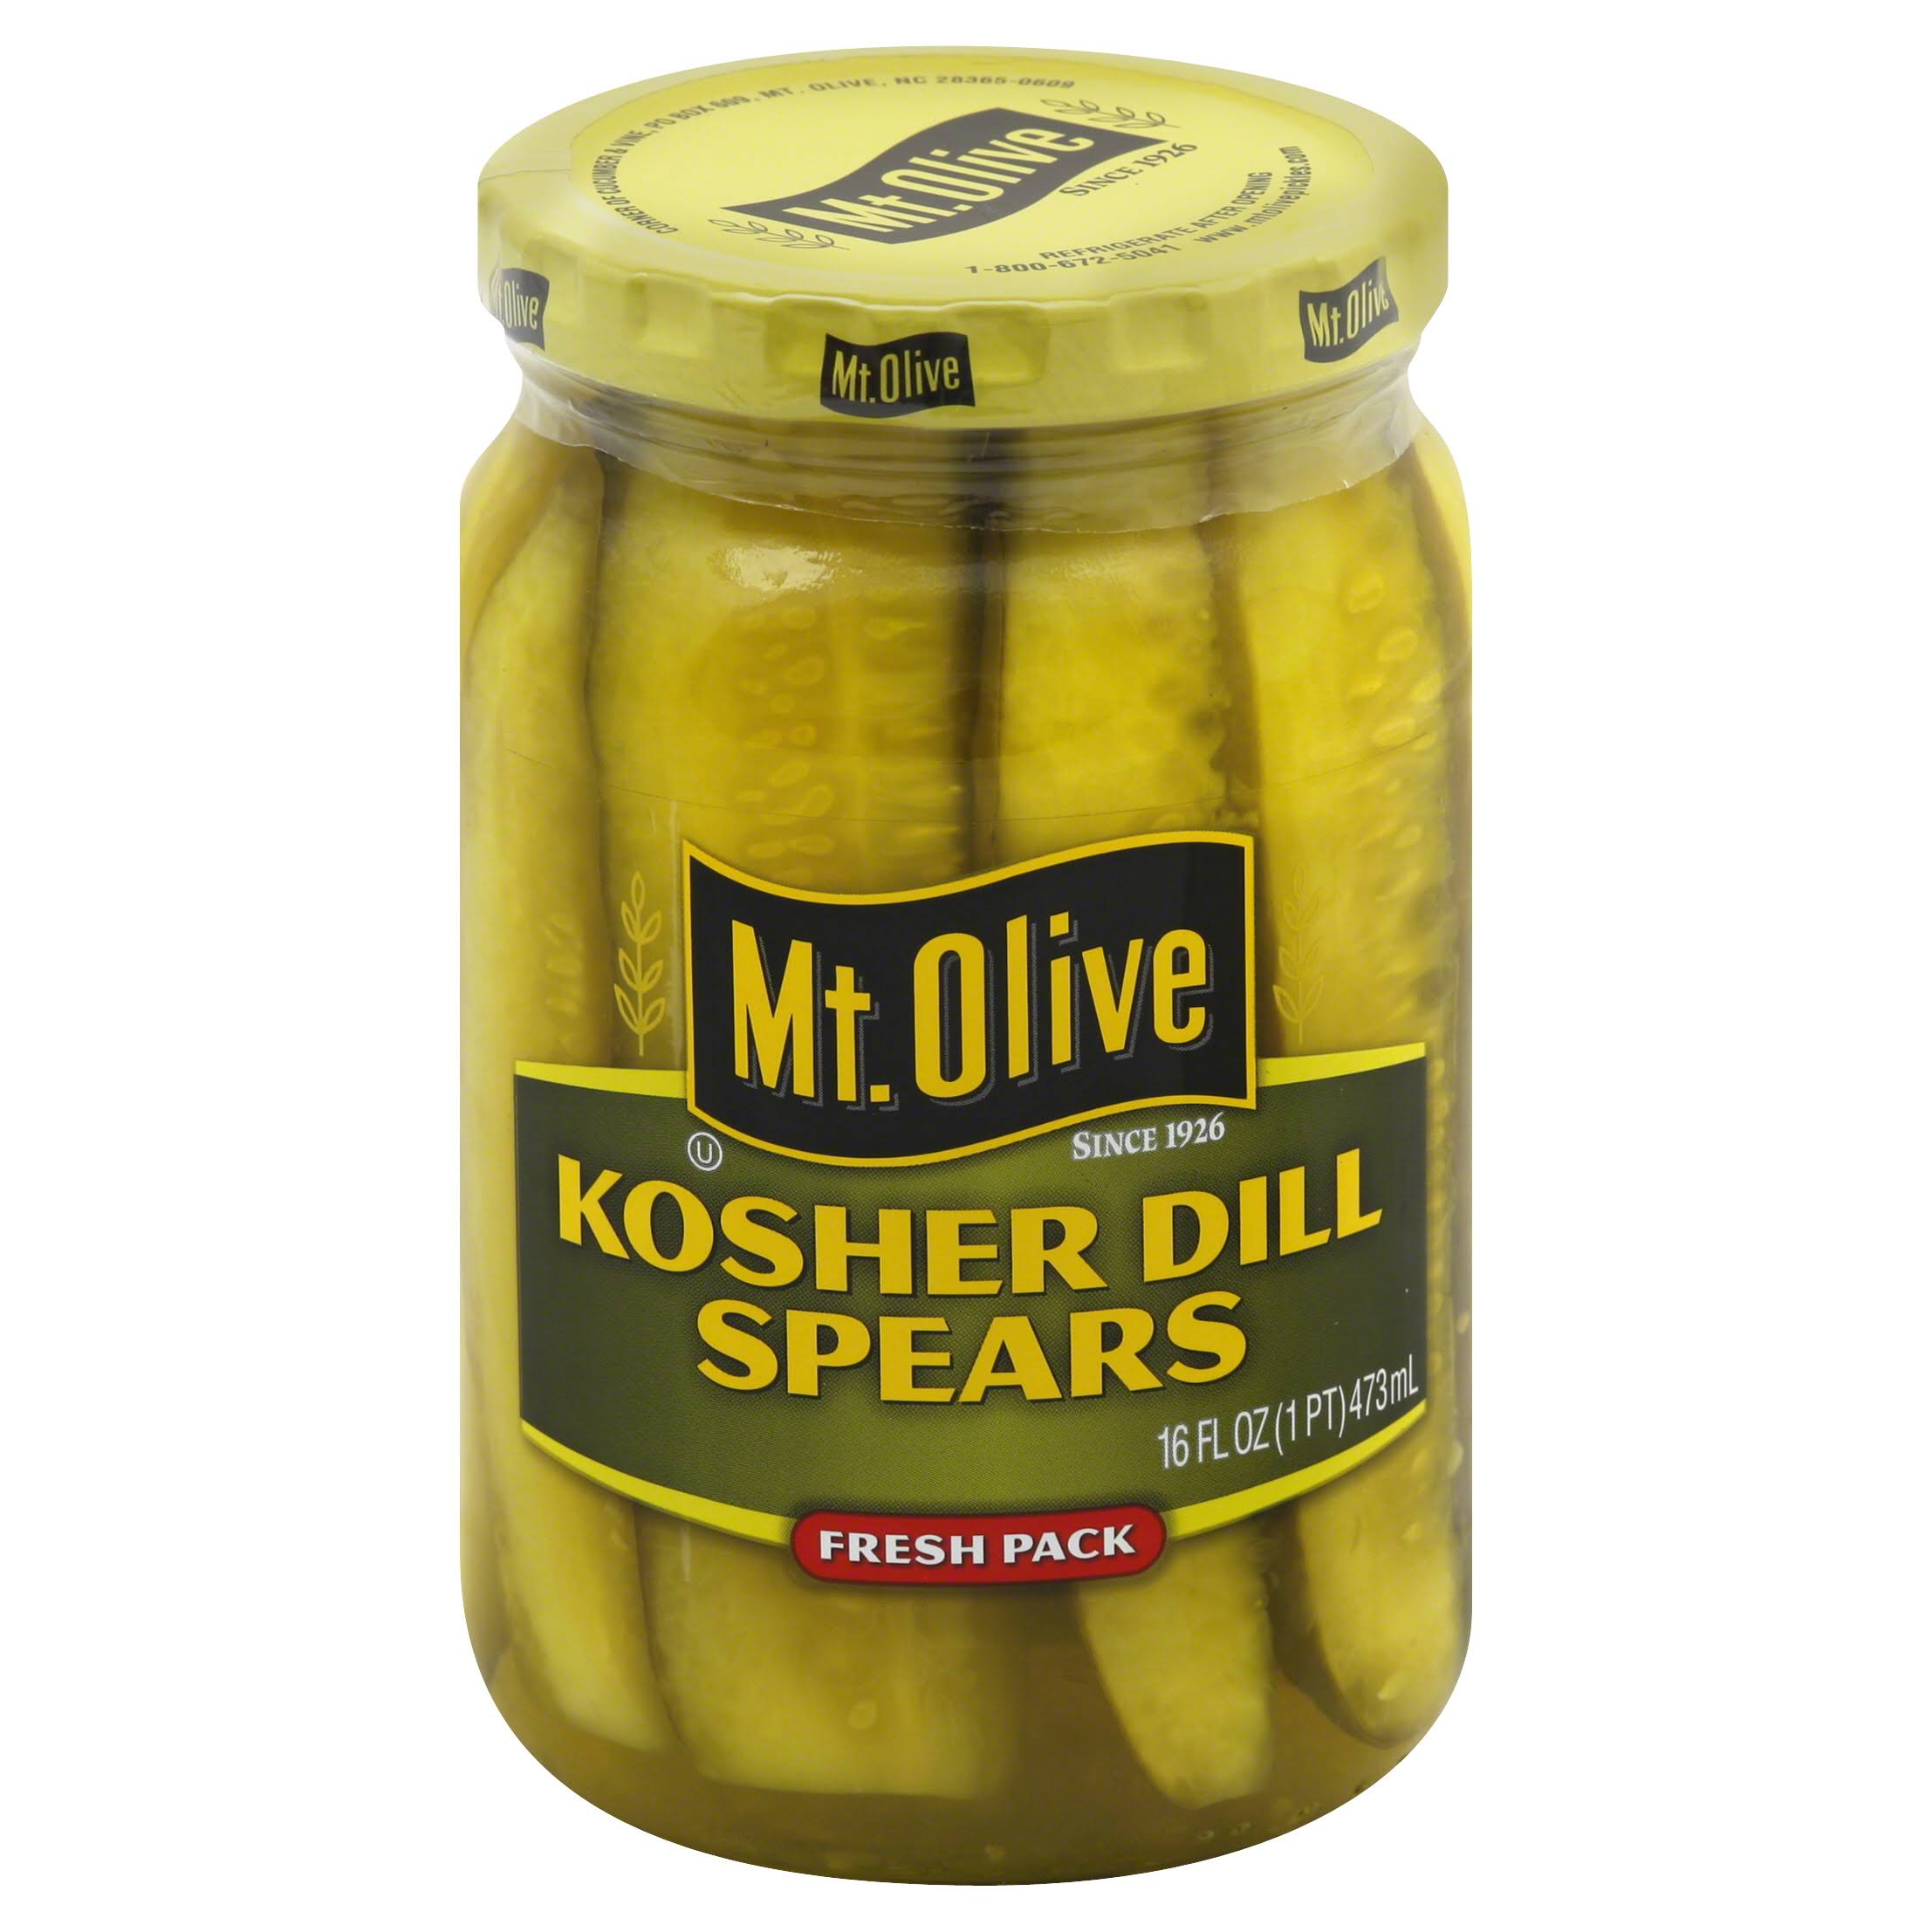 Mt. Olive Kosher Dill Spears - 16oz